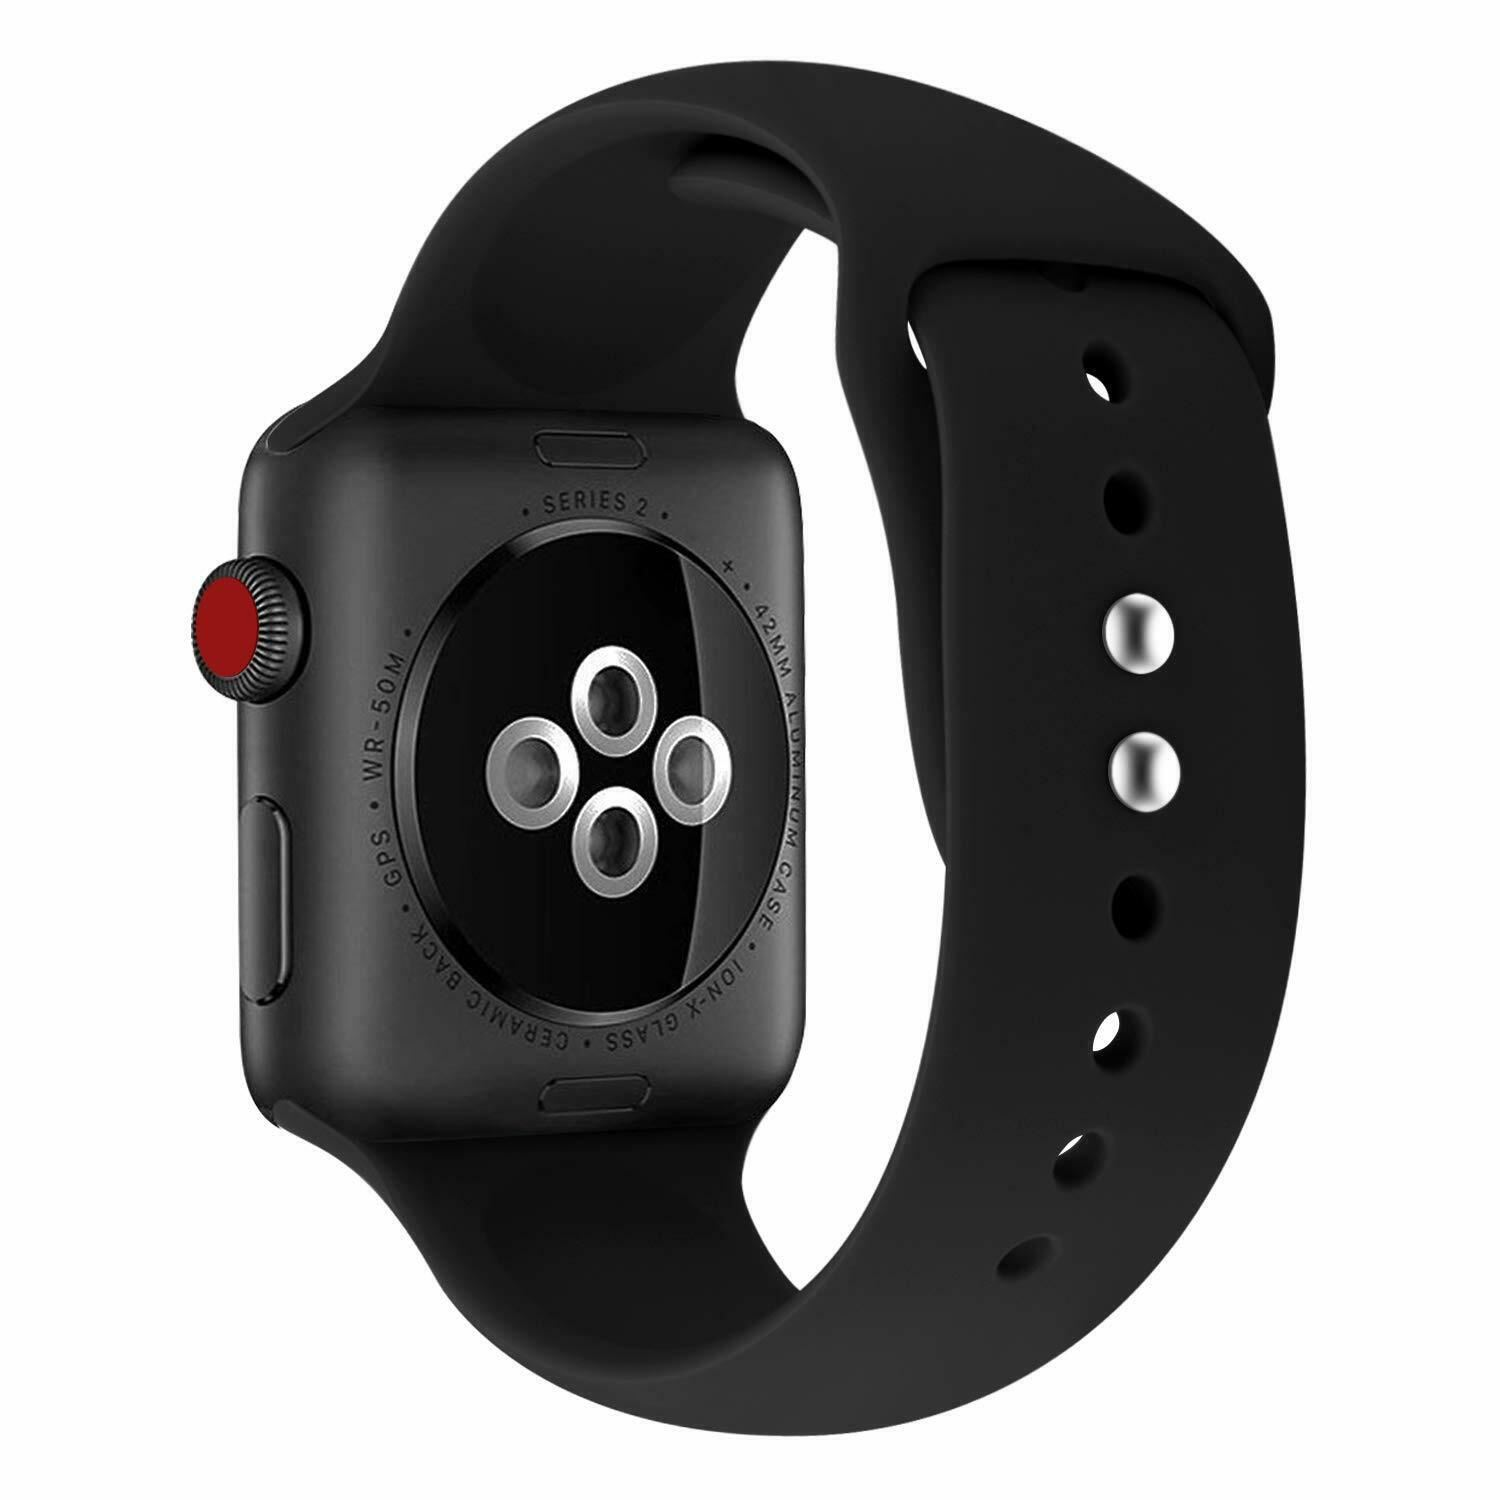 Strap-For-Apple-Watch-Silicone-Comfortable-Durable-Waterproof-Band thumbnail 3